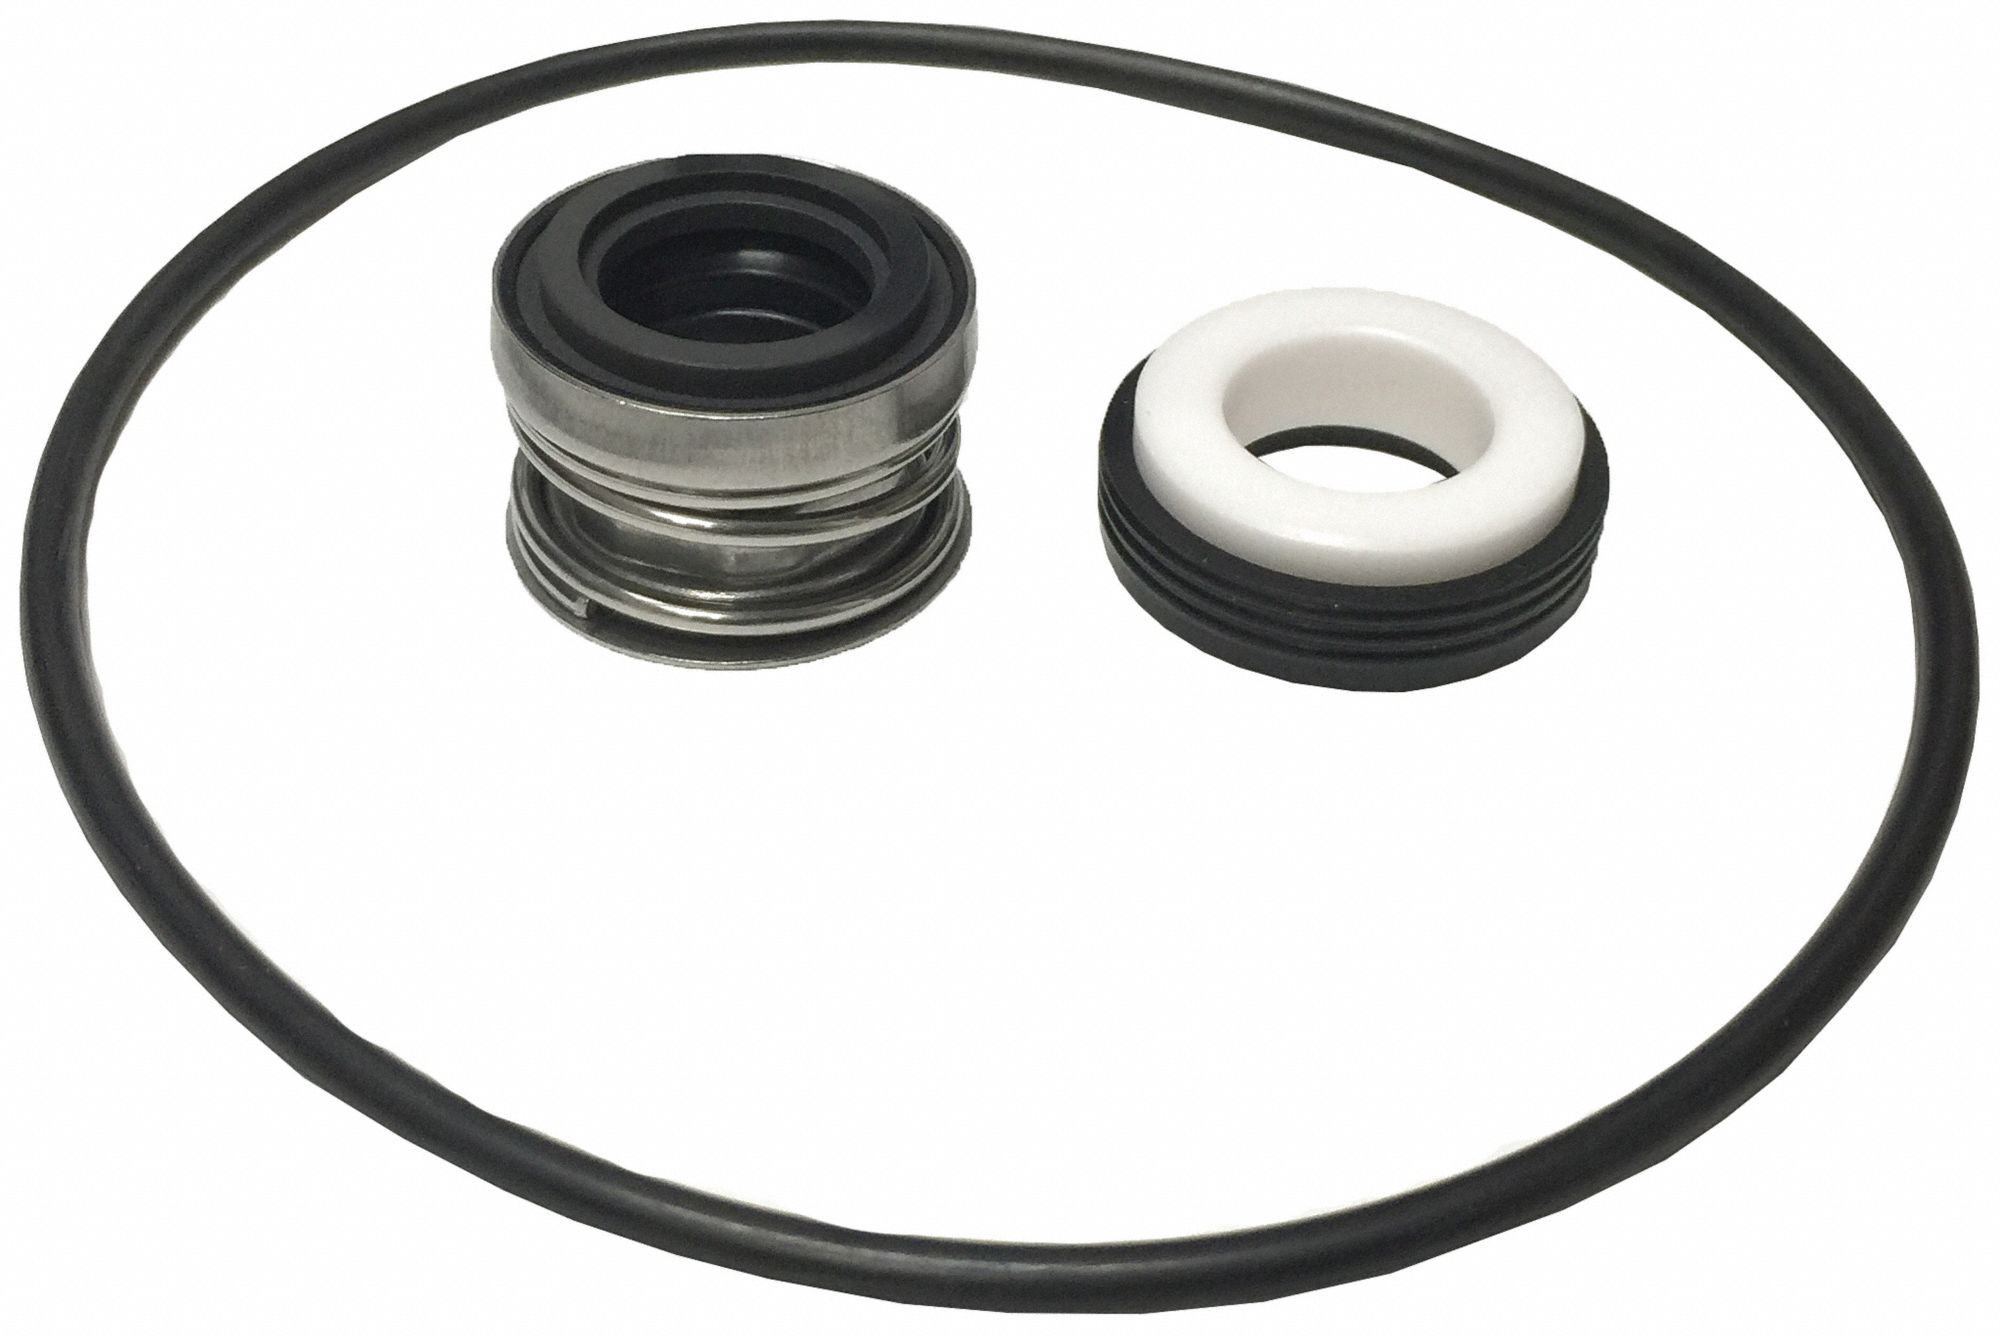 Centrifugal Pump Mechanical Seal Kit,  Buna Seal Kit,  Fits Brand American Stainless Pumps